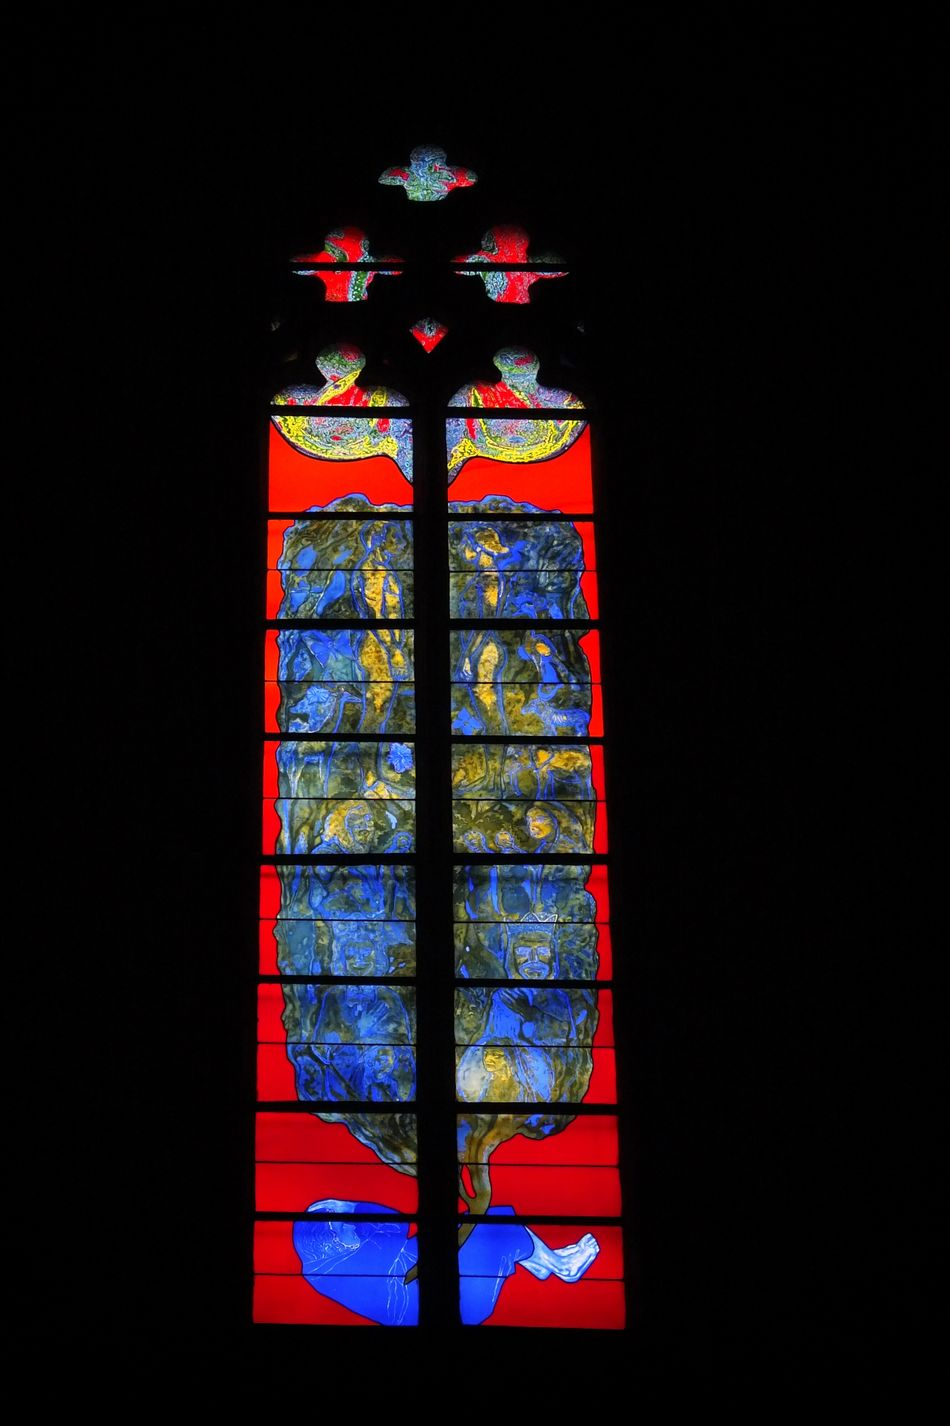 Cathédrale De Rodez Cathedral Vitrail Vitraux Stained Glass Window Rodez Aveyron Art Religious Art Religious Architecture Colorfull Colorful Colors